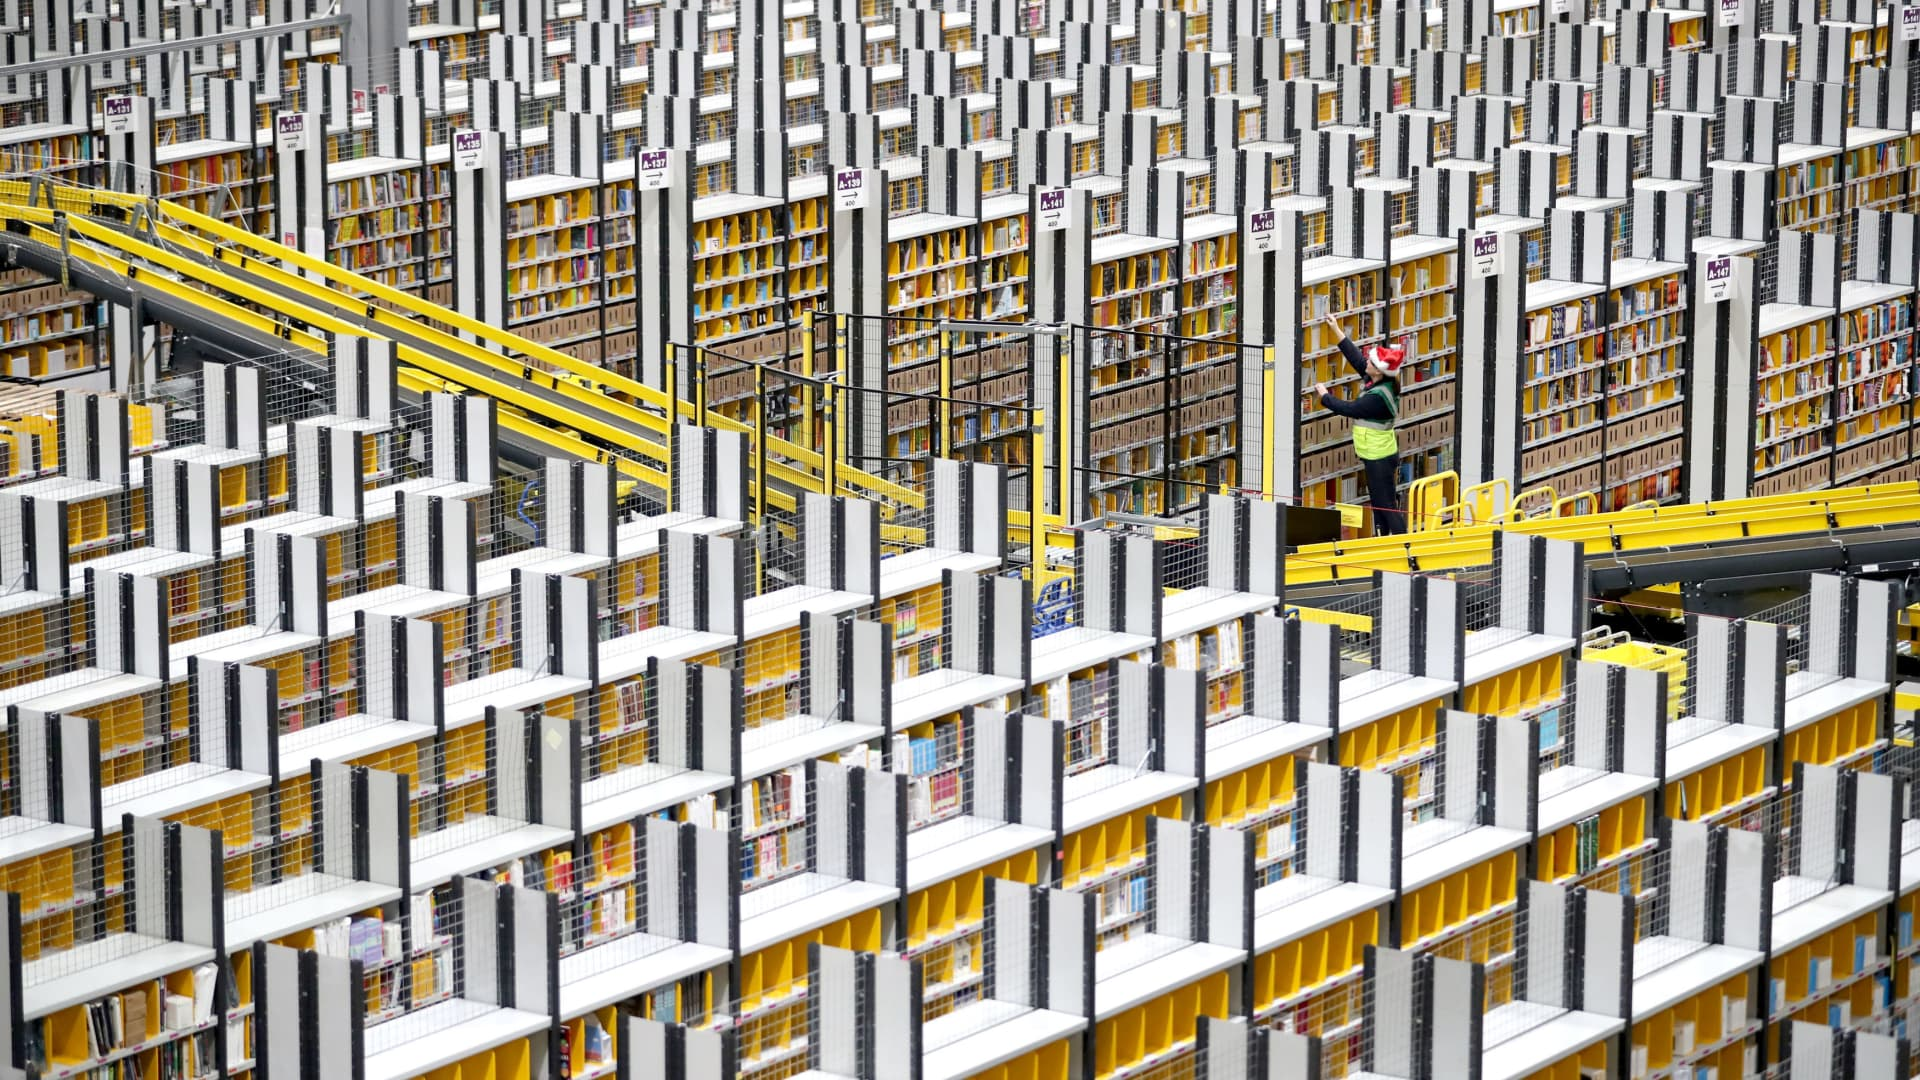 Staff make their way around the aisles collecting items before sending them to the on-site dispatch hall to be packaged inside one of Britain's largest Amazon warehouses in Dunfermline, Fife.